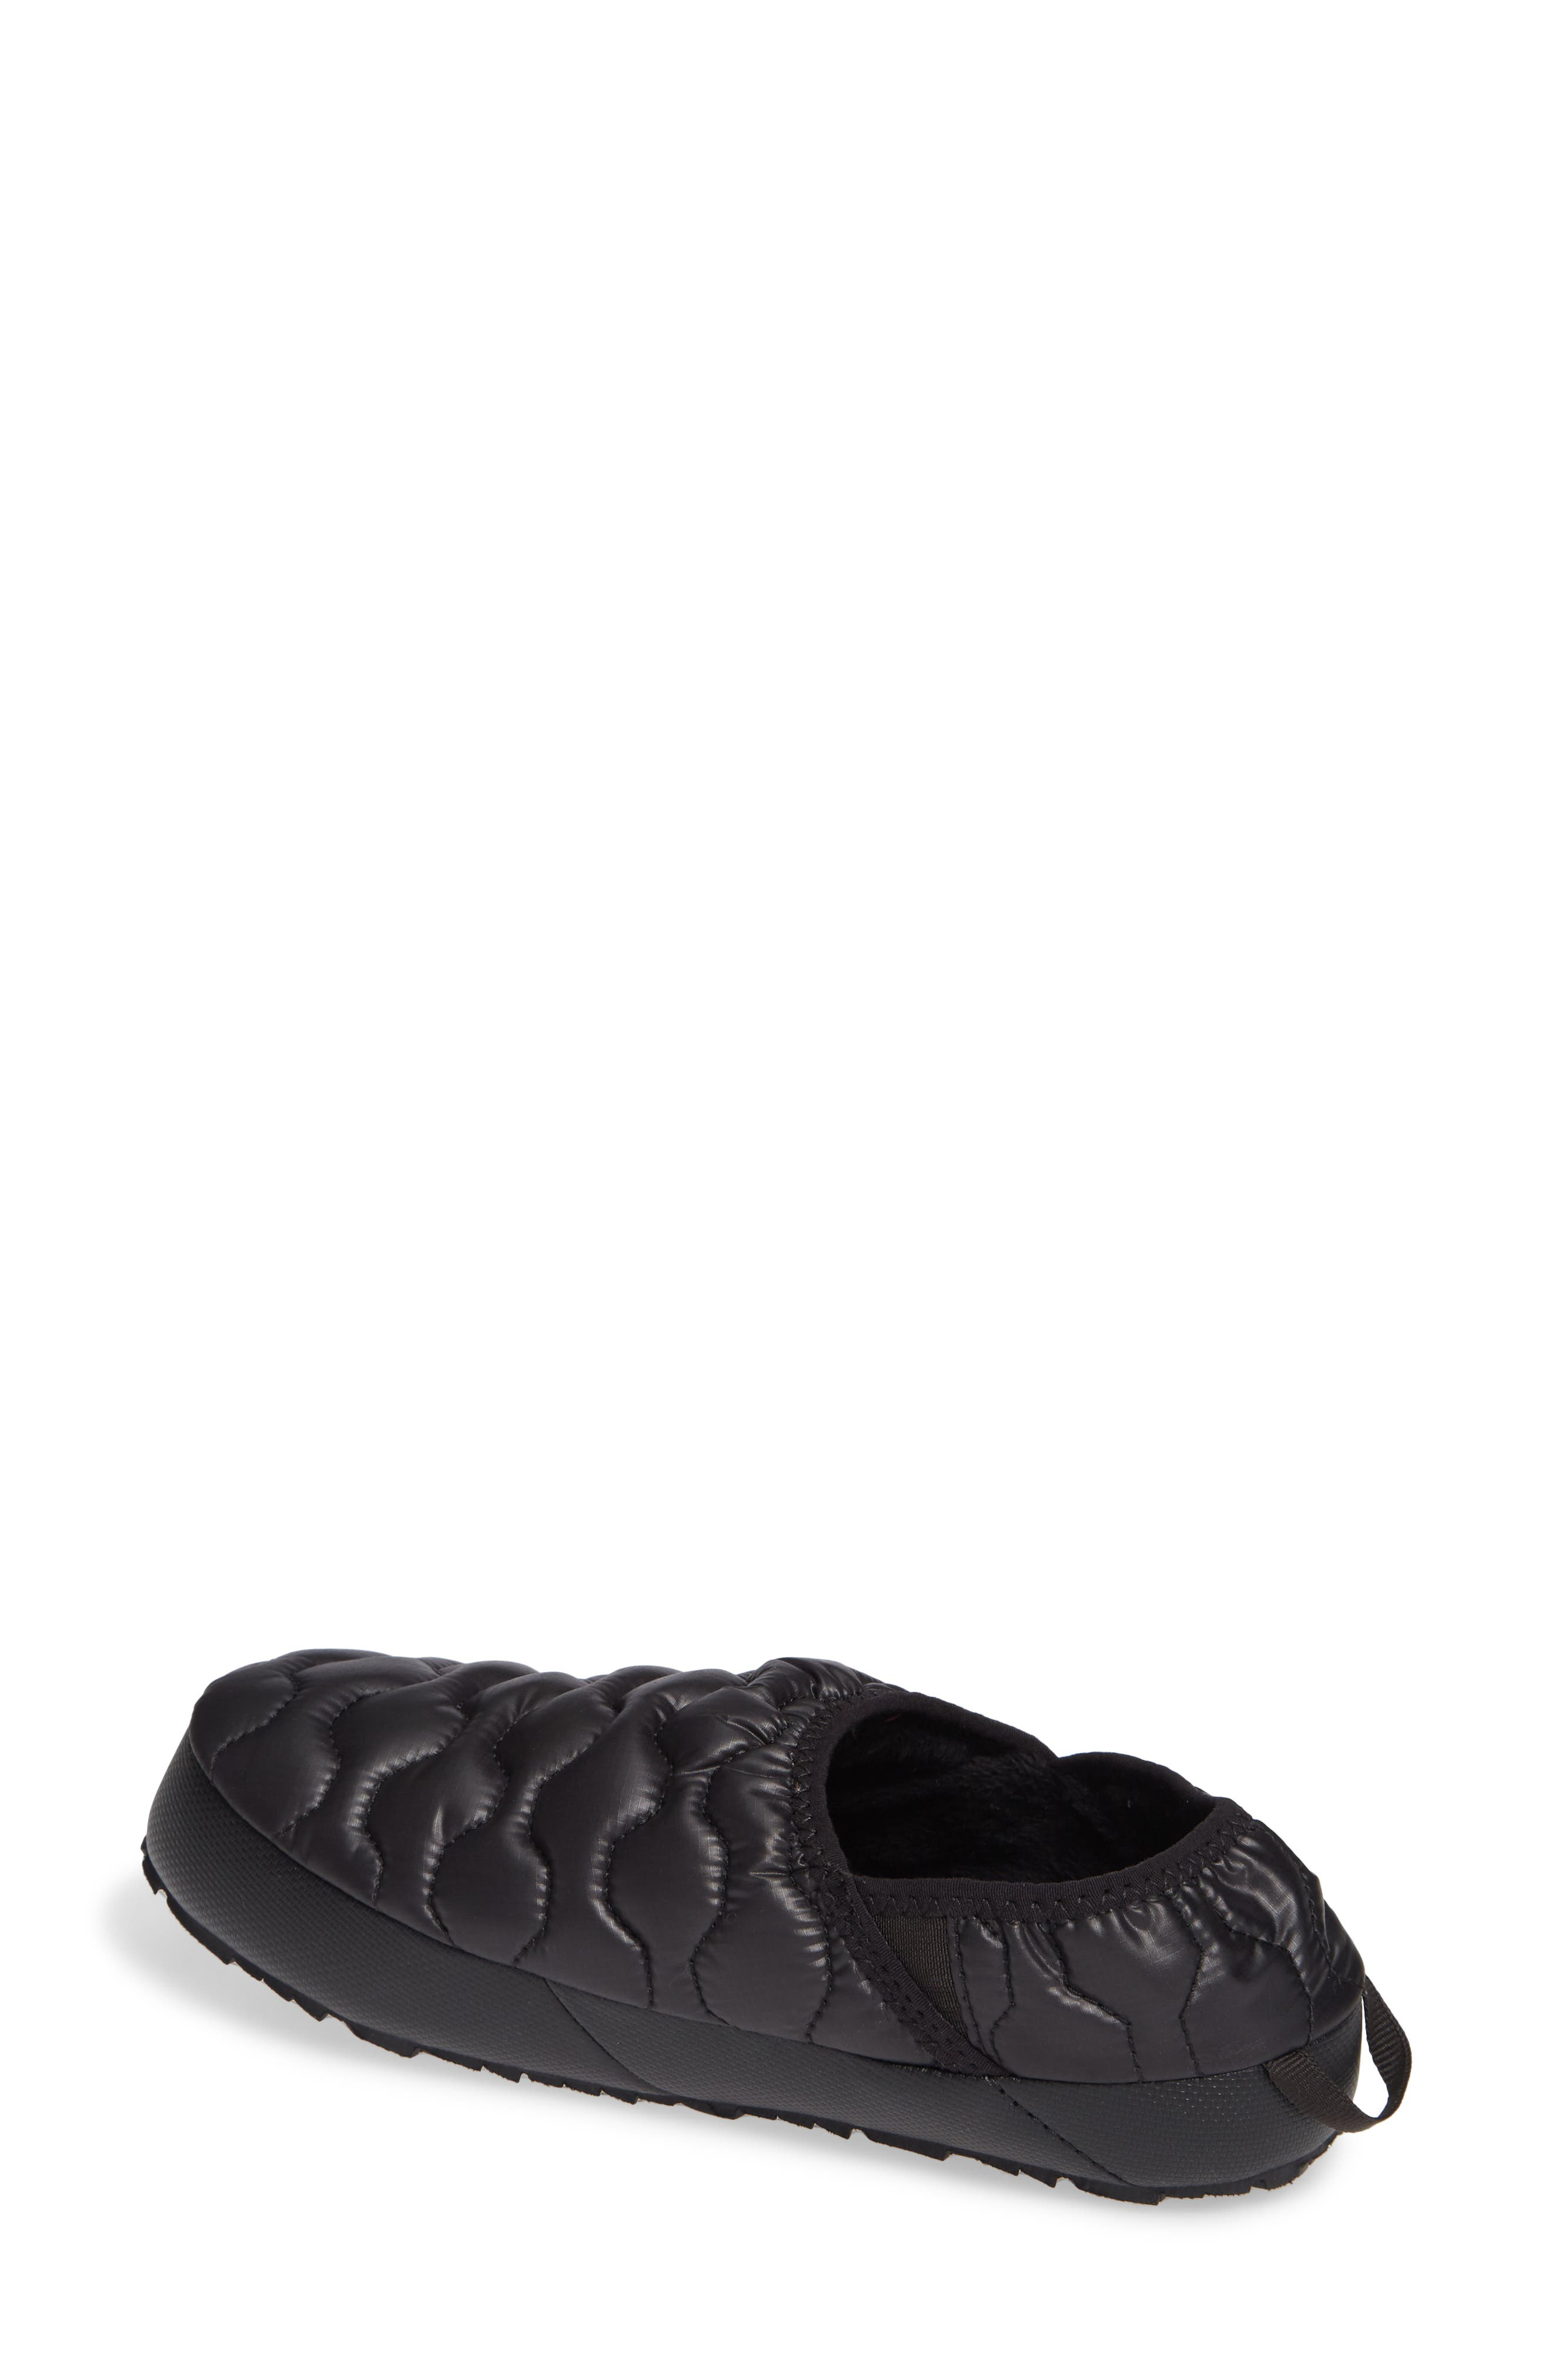 THE NORTH FACE, Thermoball<sup>™</sup> Water Resistant Traction Mule, Alternate thumbnail 2, color, SHINY BLACK/ BELUGA GREY